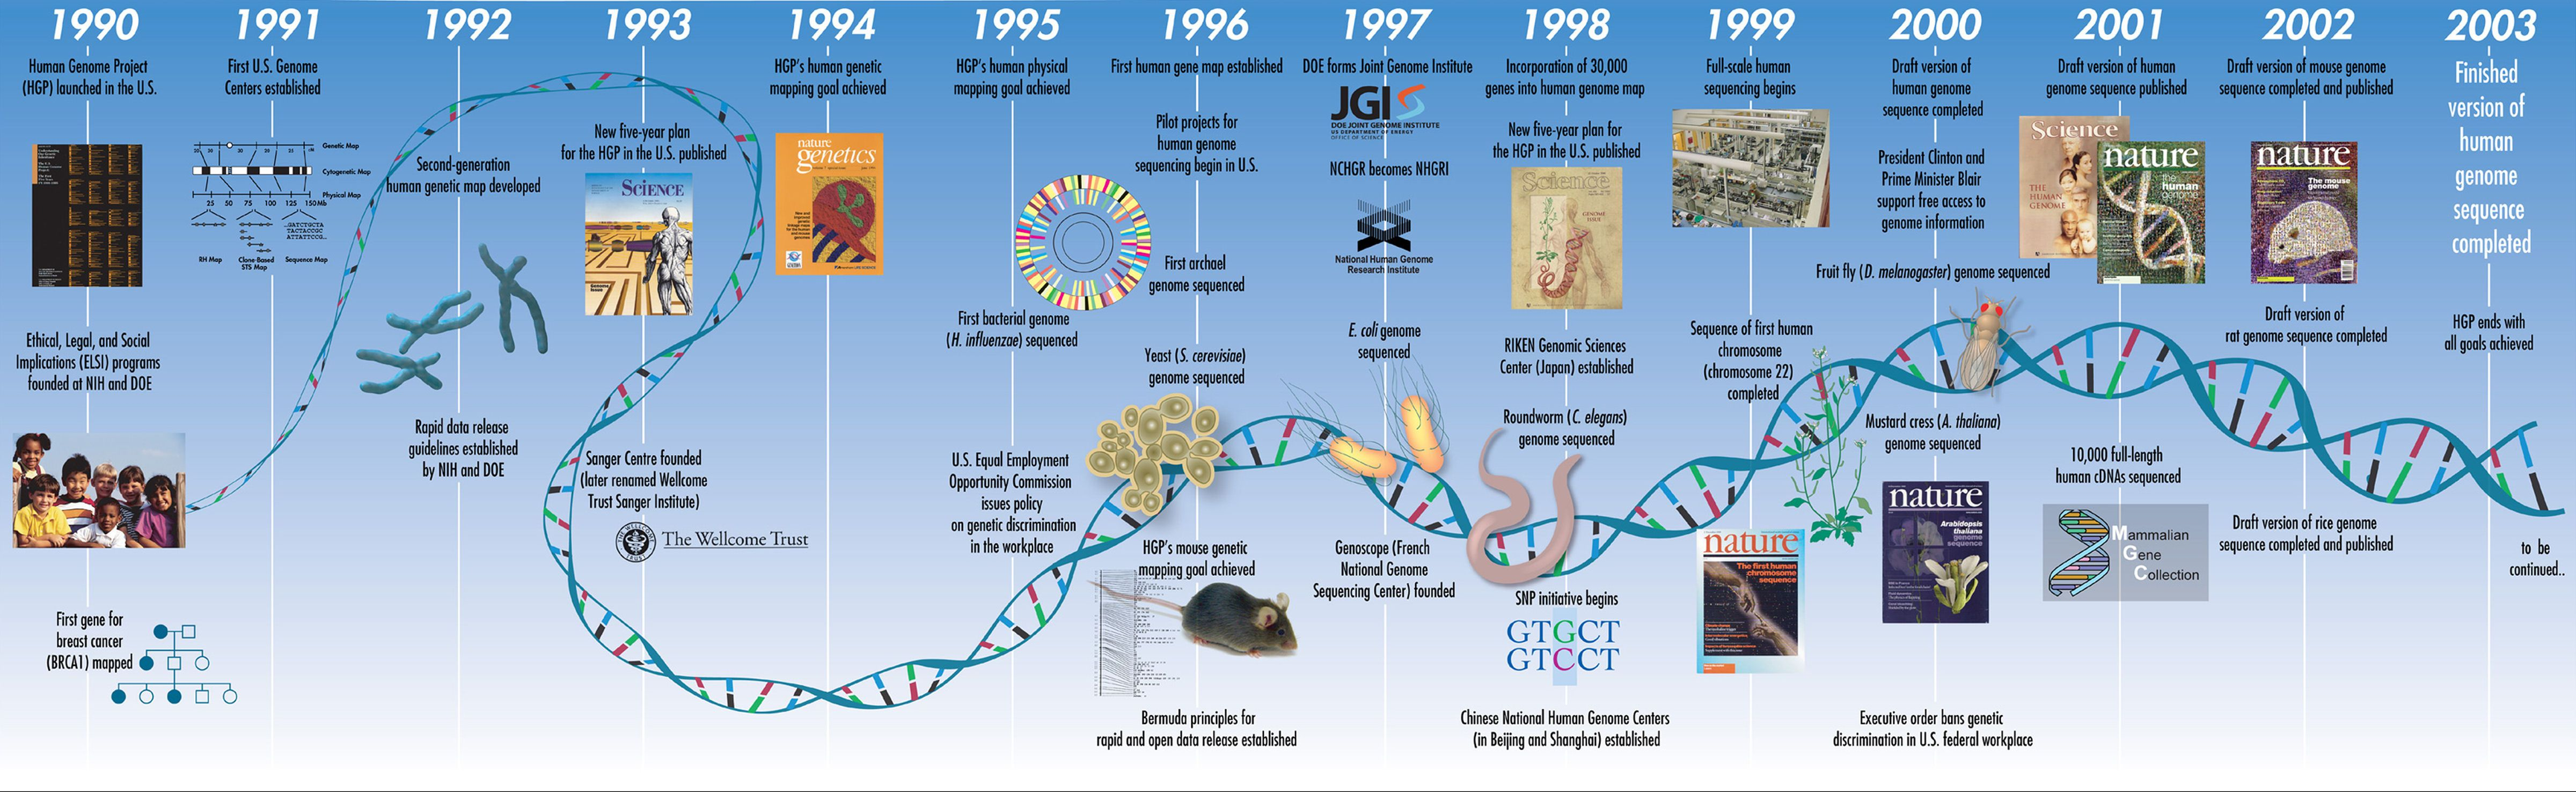 a view on the humane genome project 3 days ago  the human genome project was an international research effort to determine the  sequence of the human genome and identify the genes that it.